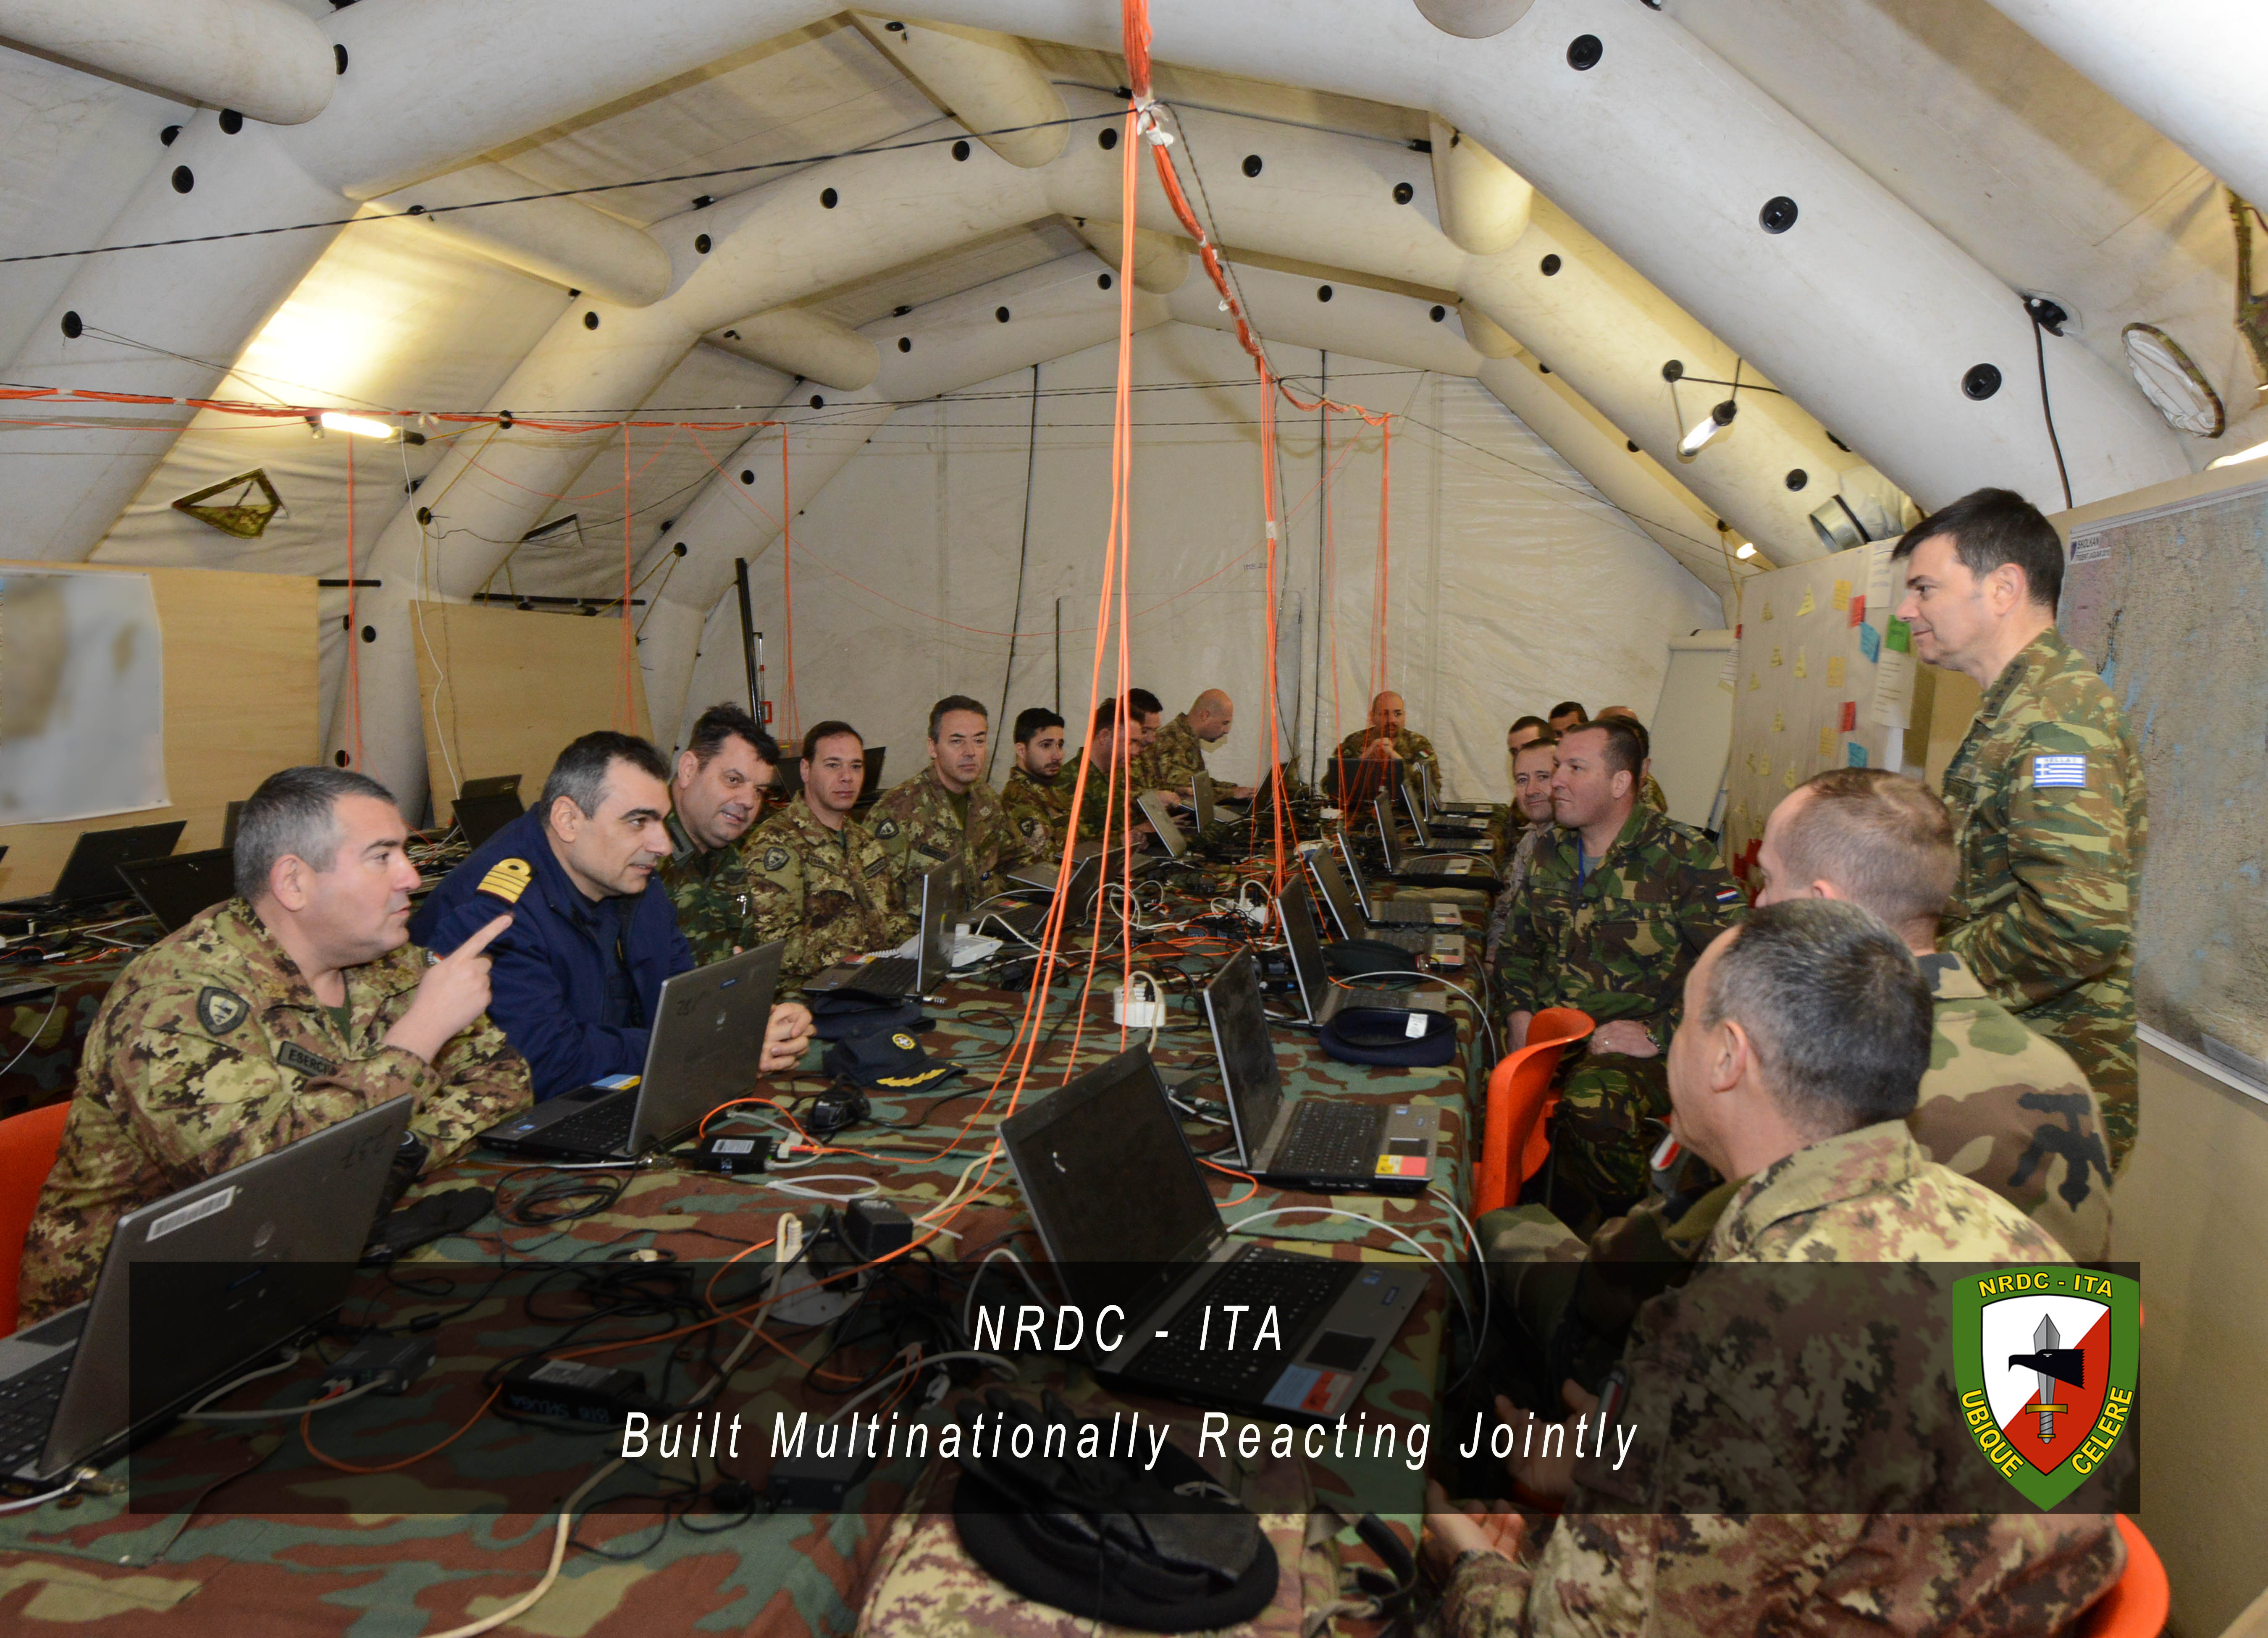 26th February - NRDC-ITA Exercise and Training